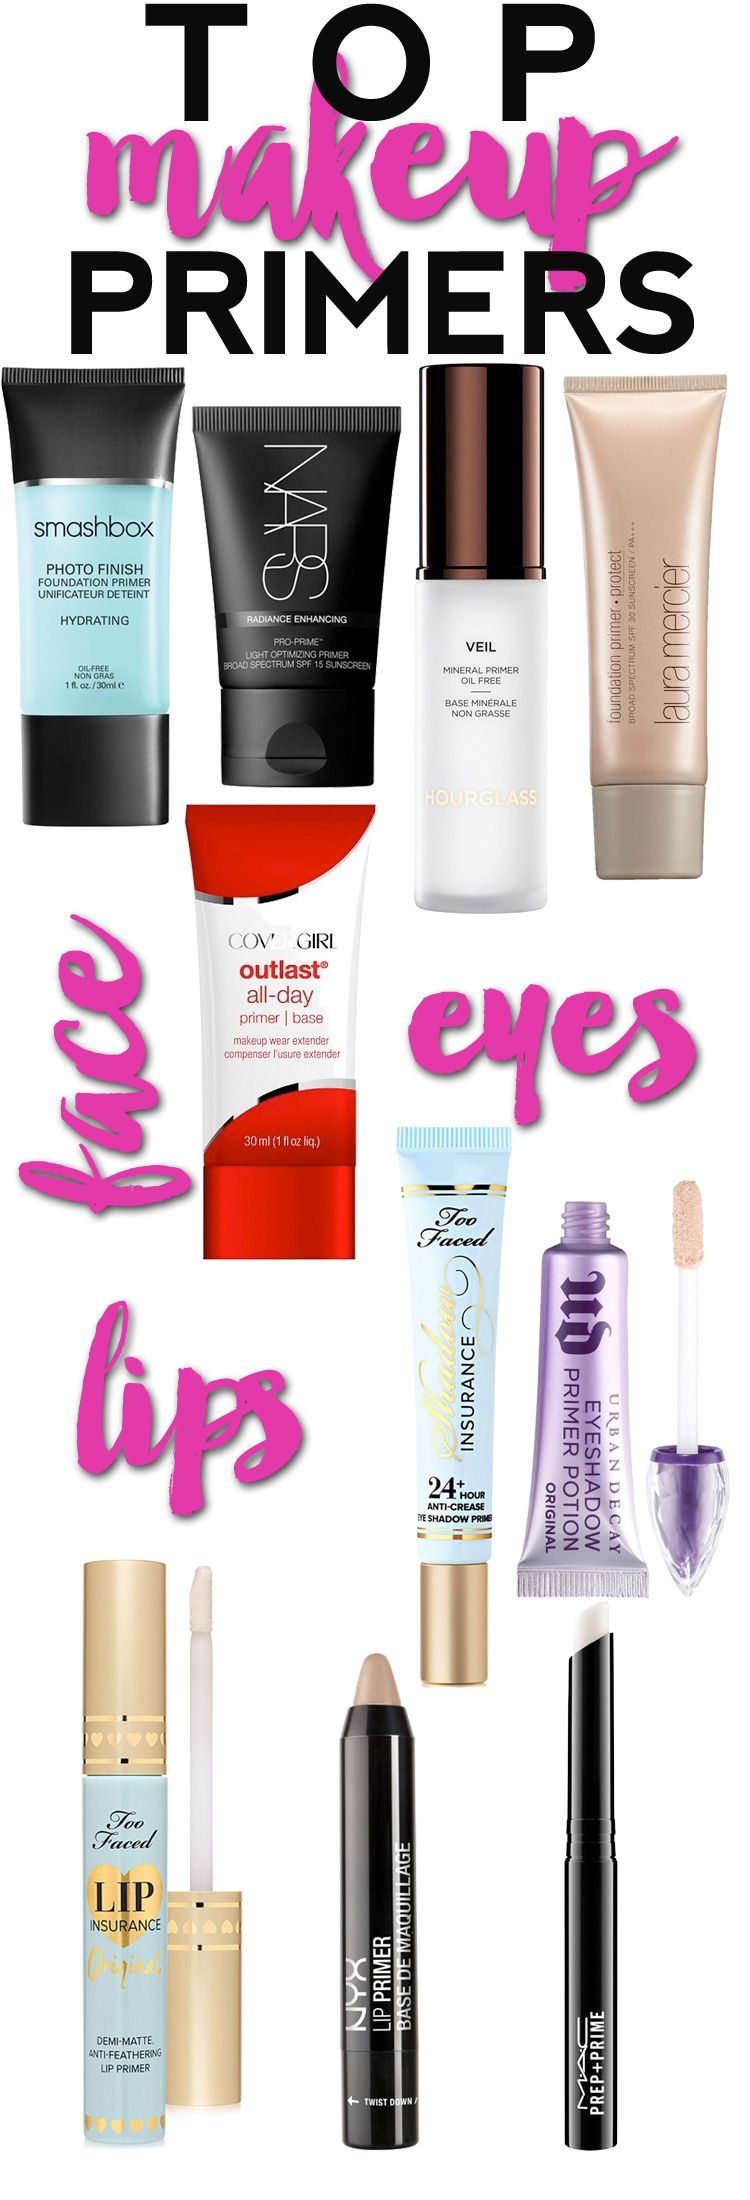 Top 10 Face, Lip & Eye Primers.